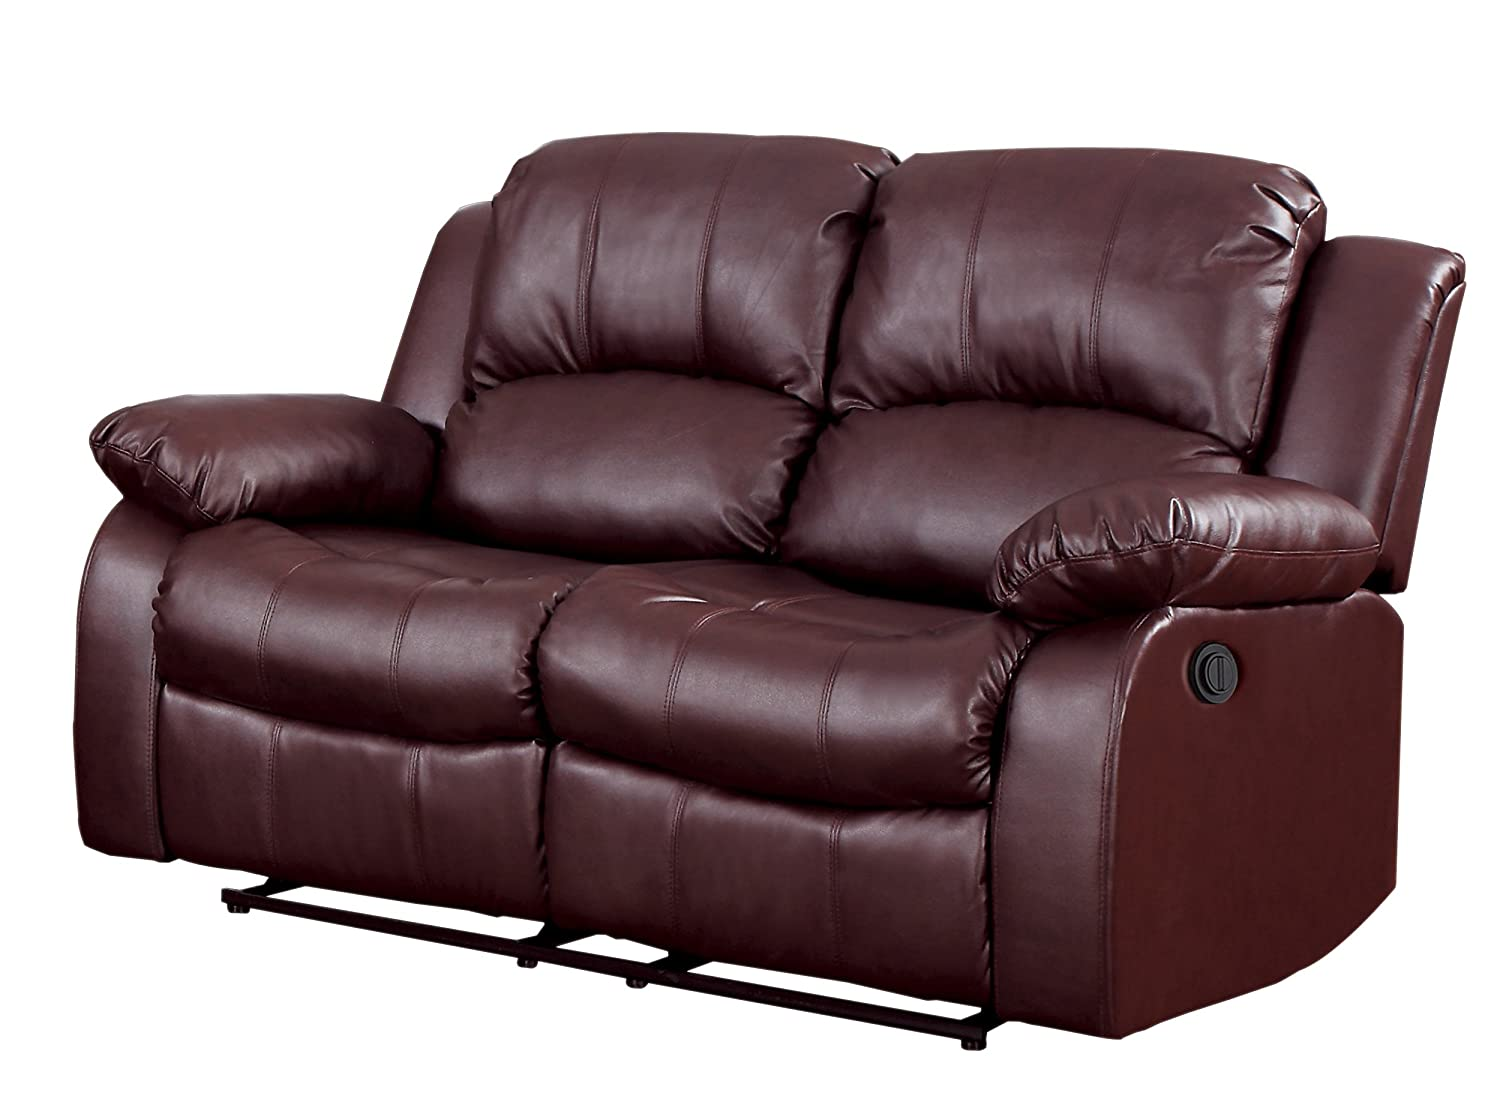 Homelegance 9700BRW-2PW Plushy Rolled Tufted Power Reclining Motion Bonded Leather  Love Seat - Brown